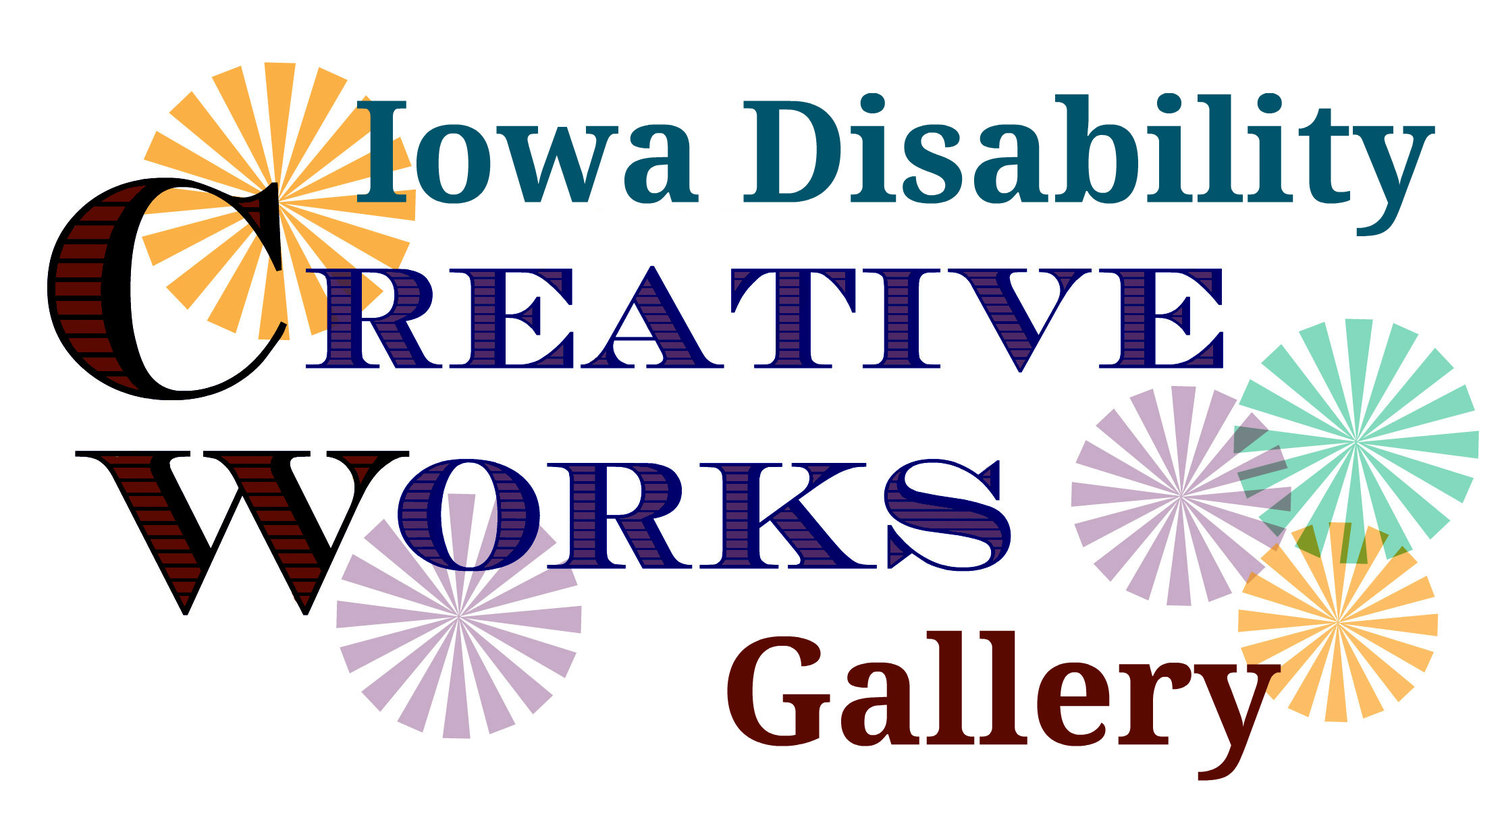 The Iowa  Disability  Creative  Works  Gallery